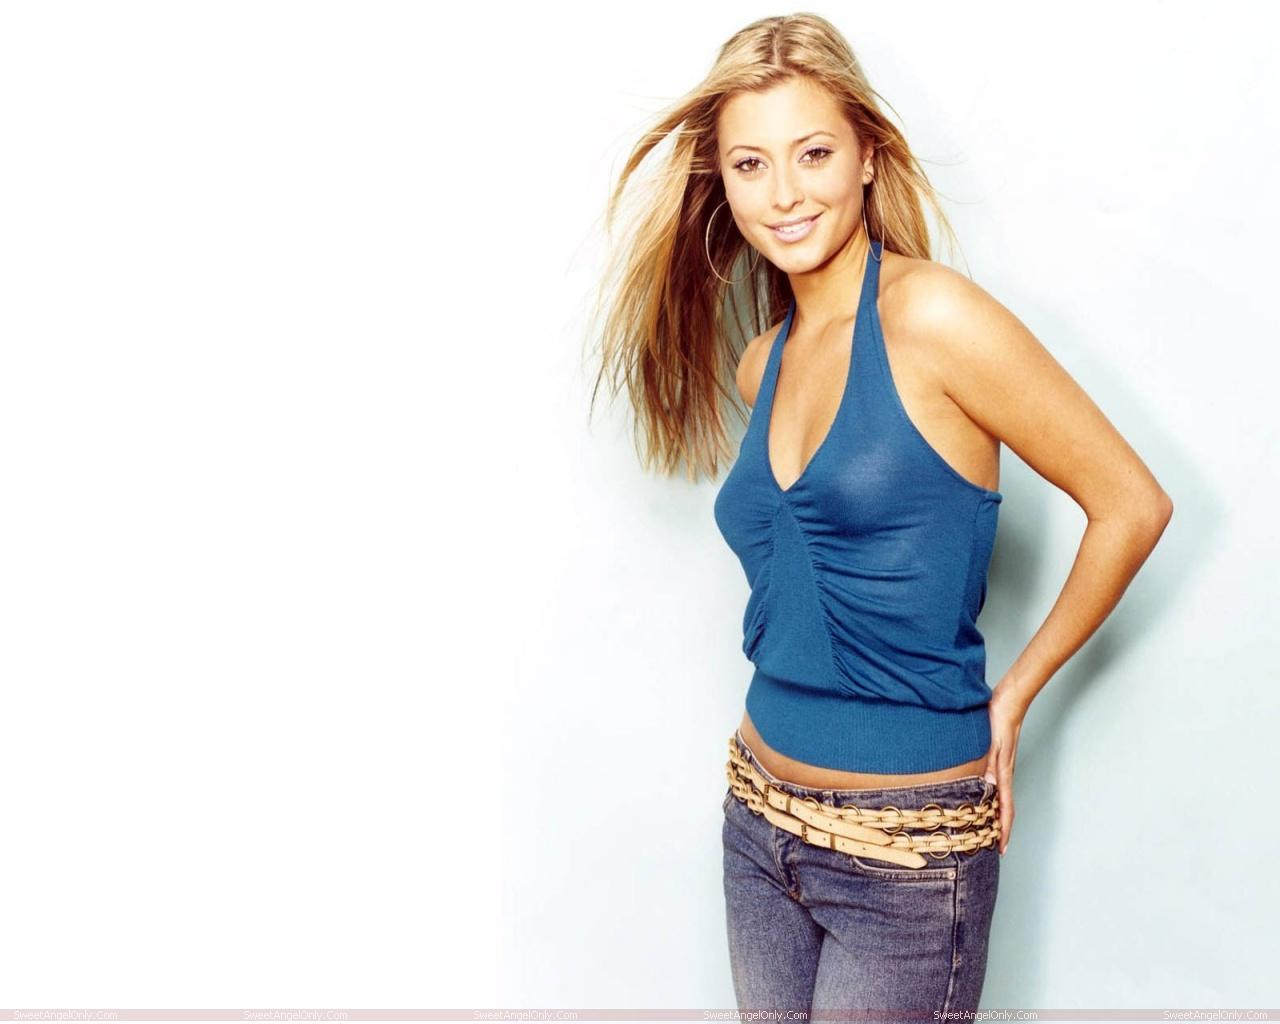 http://4.bp.blogspot.com/-SUV5yjXXIIg/TV1Gpvf2rQI/AAAAAAAAEfg/HbyLpA_bhsk/s1600/actress_holly_valance_hot_wallpapers_sweetangelonly_01.jpg